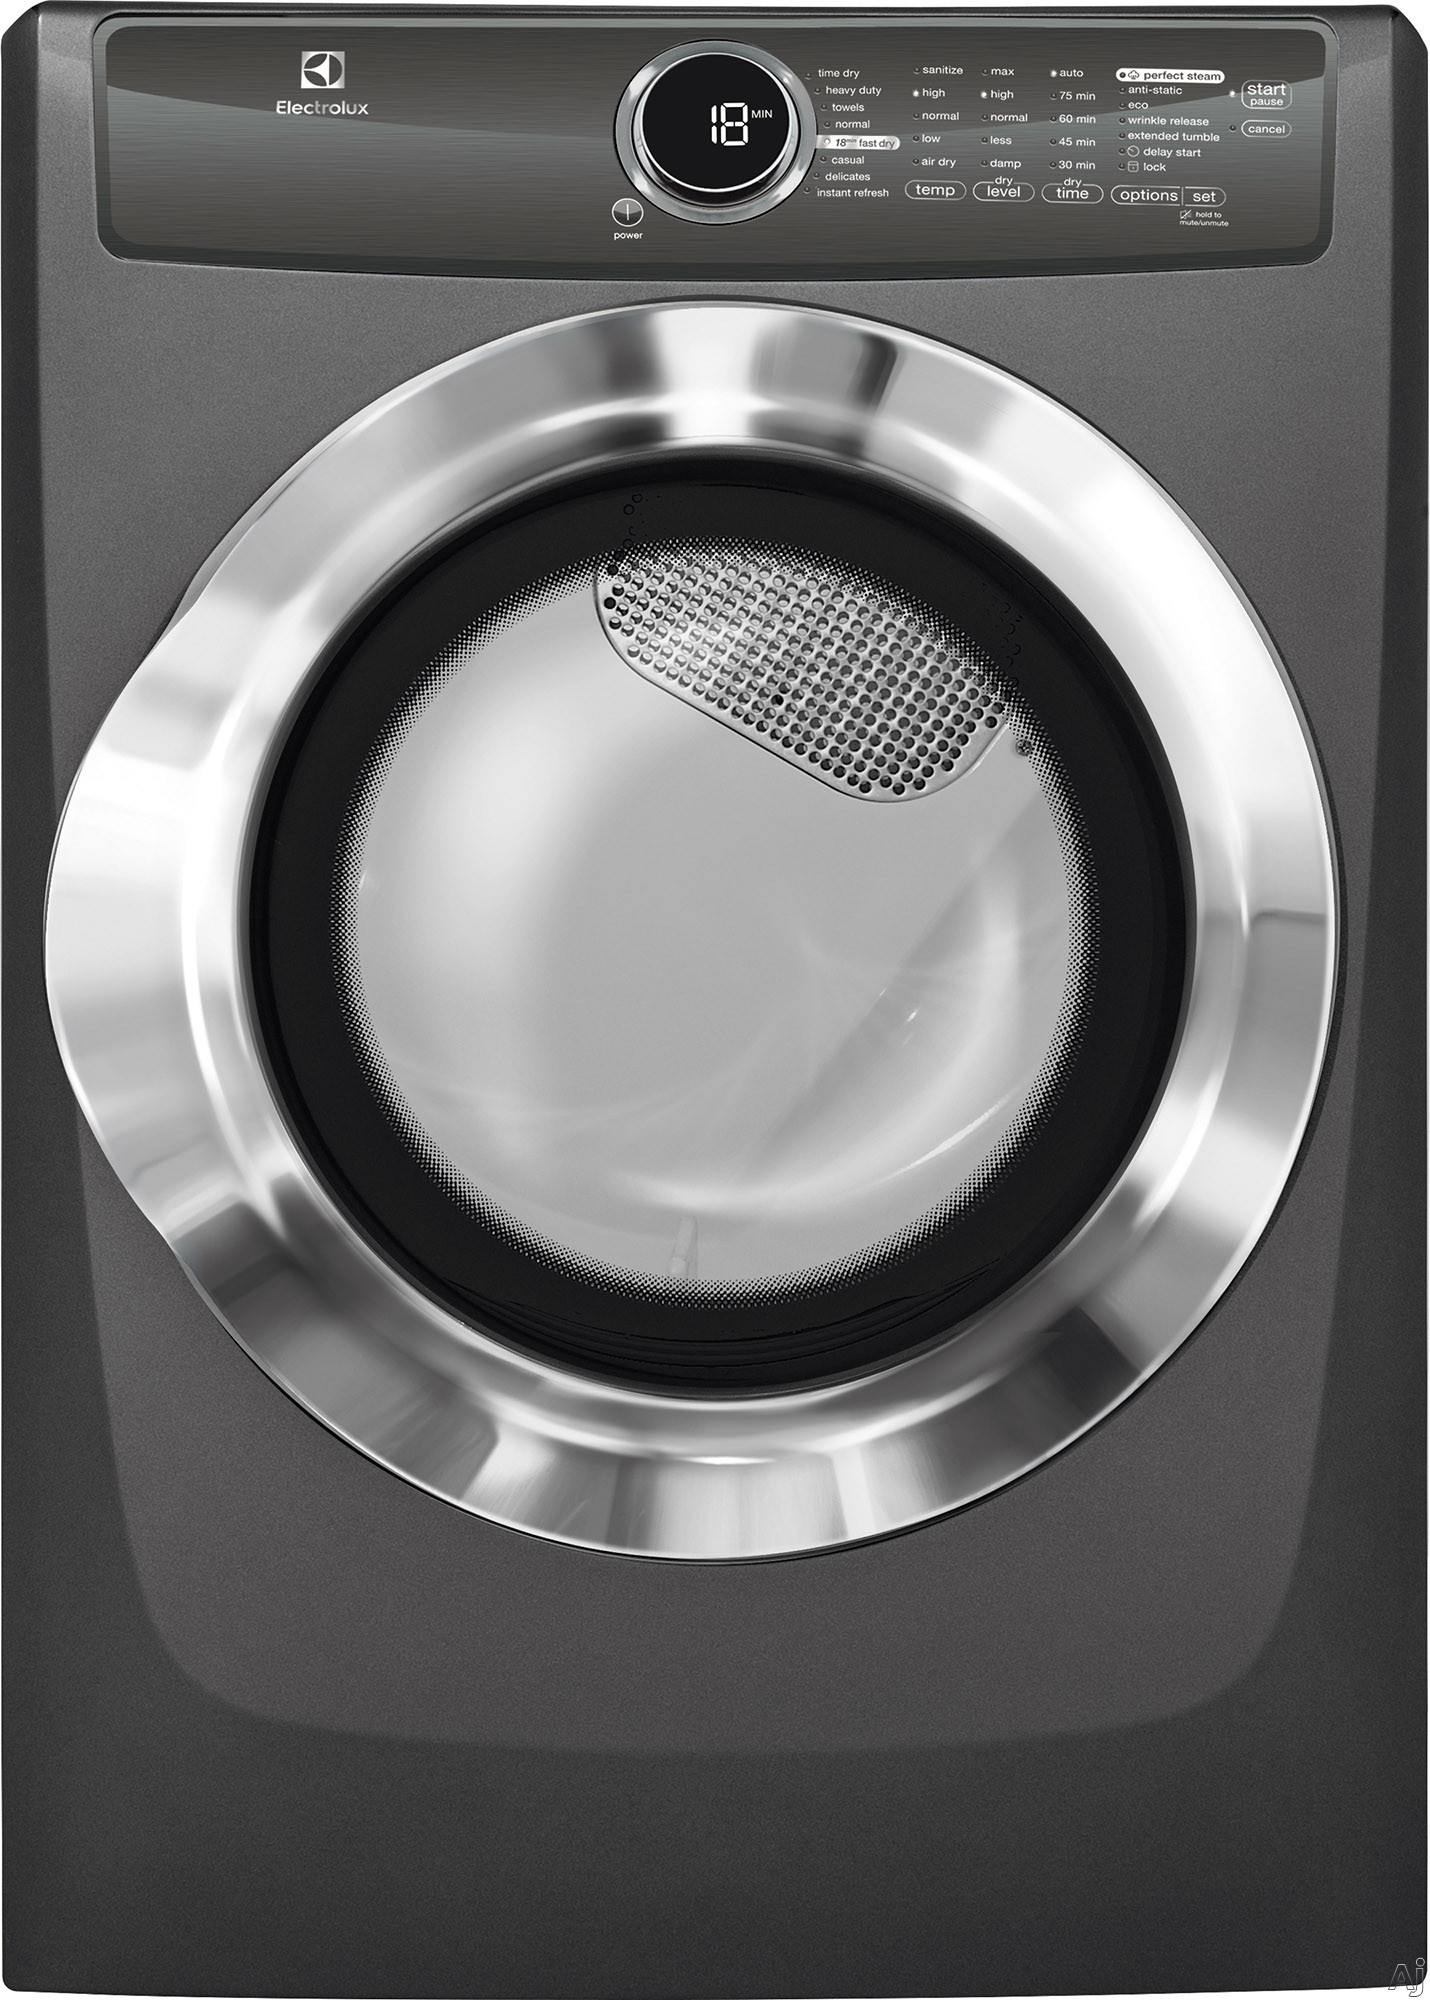 Electrolux EFMG617SX 27 Inch 8.0 cu. ft. Gas Dryer with Moisture Sensor, Perfect Steam™, Instant Refresh, 9 Dry Cycles, 15 Min Fast Dry, Allergen Cycle, Extended Tumble, Luxury-Quiet Sound System and ENERGY STAR® Rated